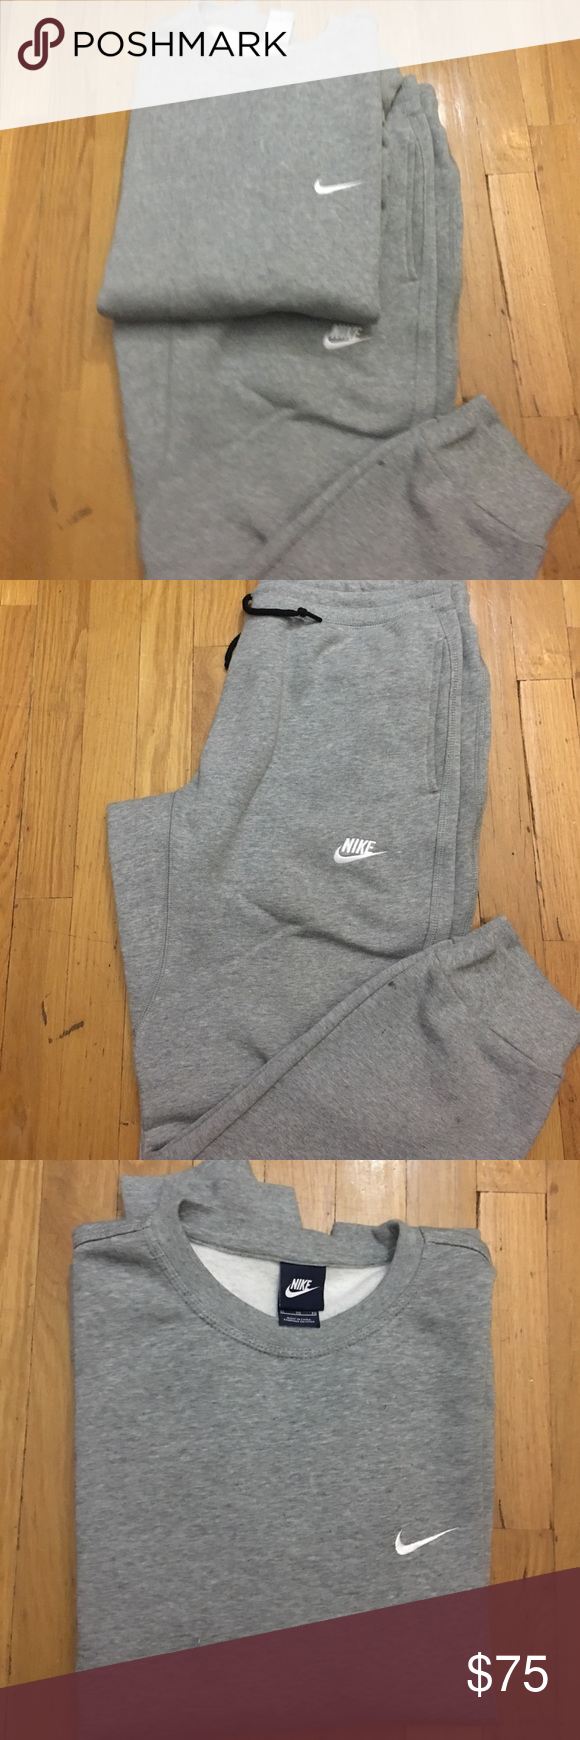 Nike Sweatsuit (sold together) Excellent condition: top XL, bottom L Nike Shirts Sweatshirts & Hoodies